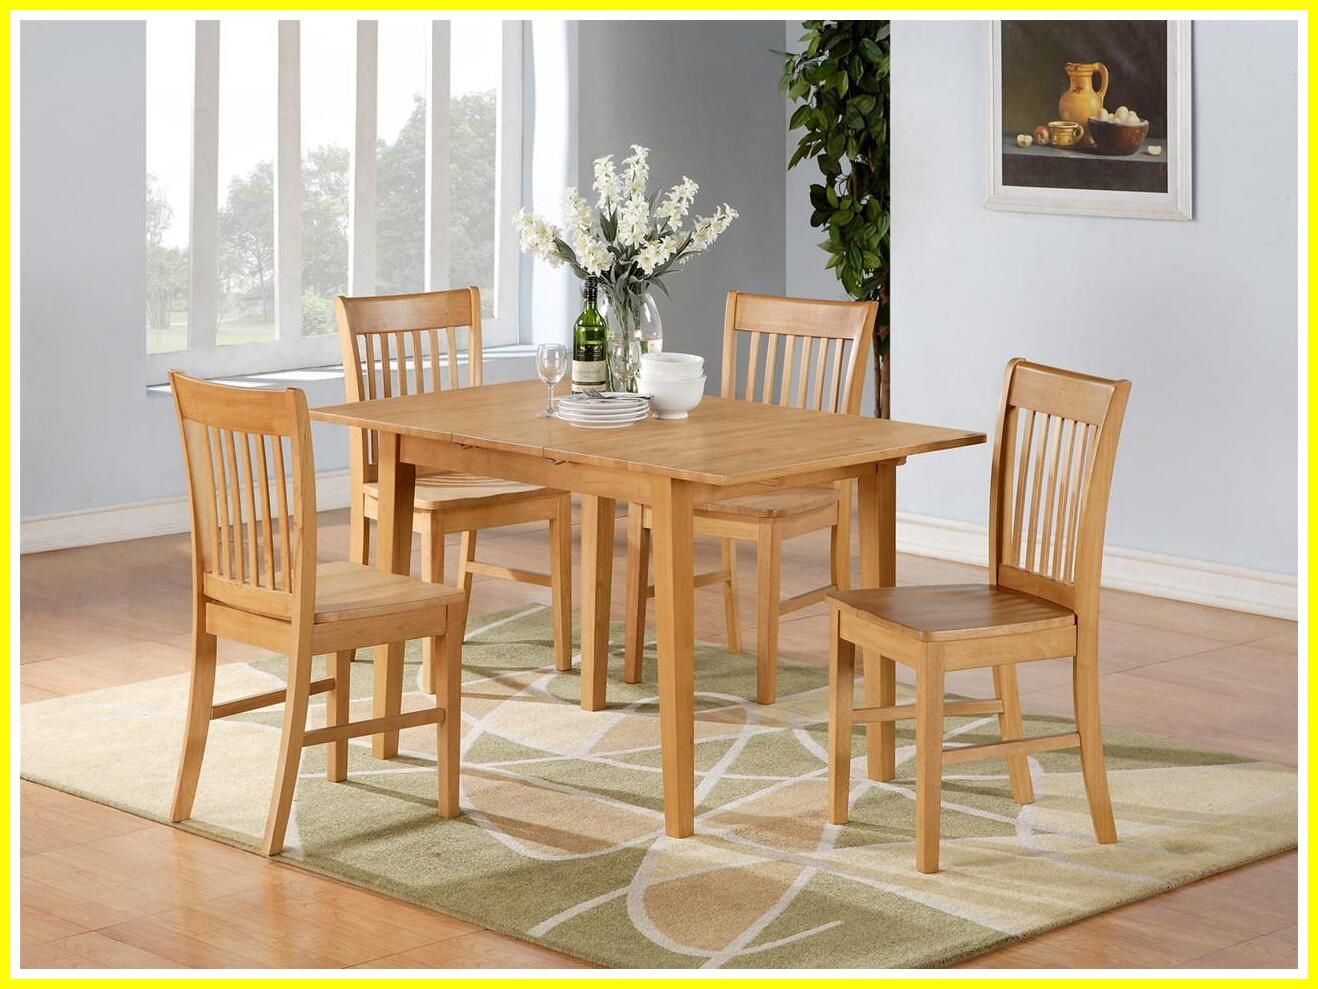 Pin on light wood dining room chairs